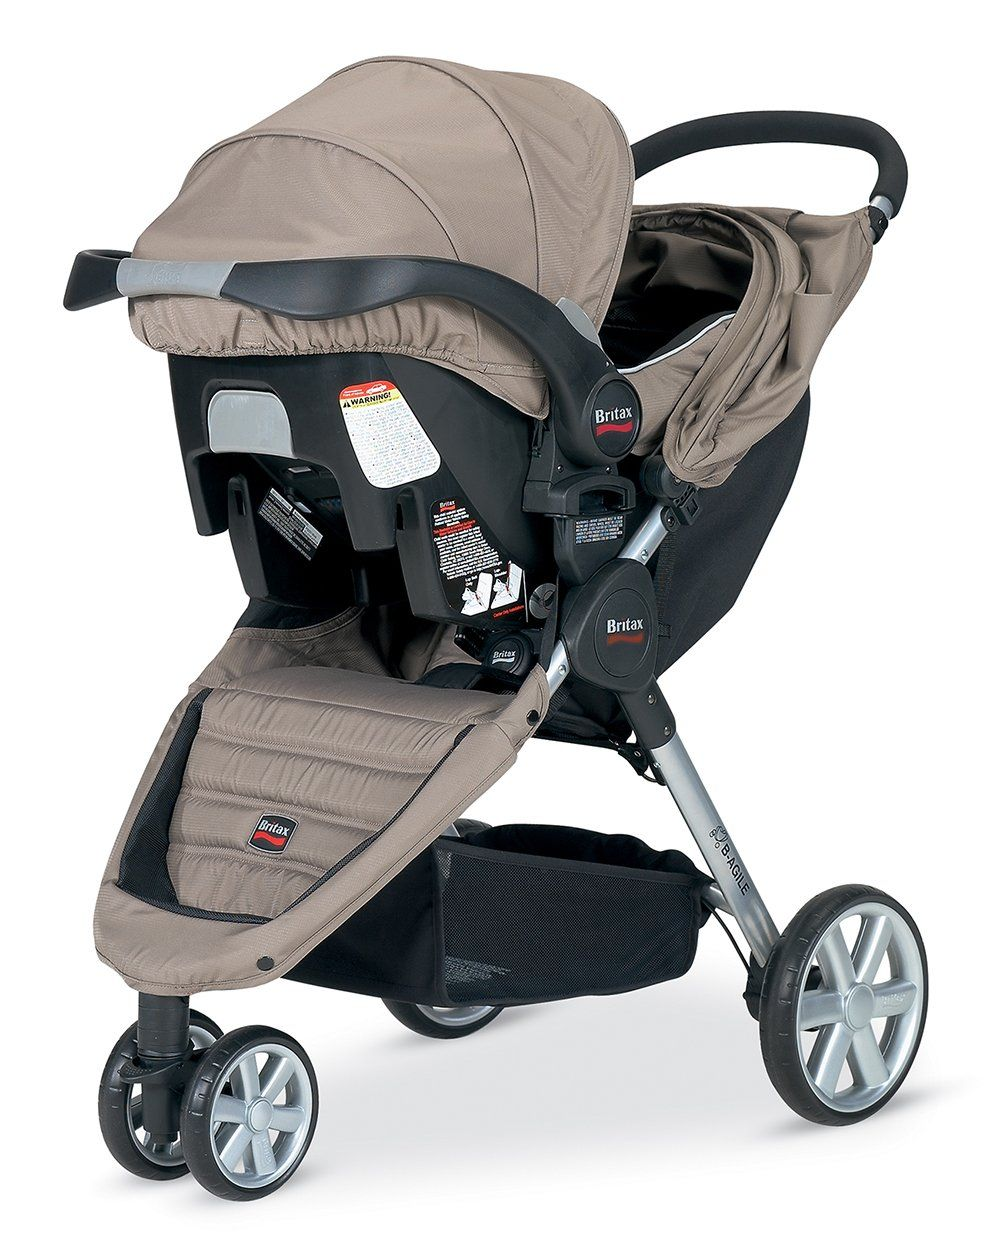 Britax 2013 BAgile and BSafe Travel System